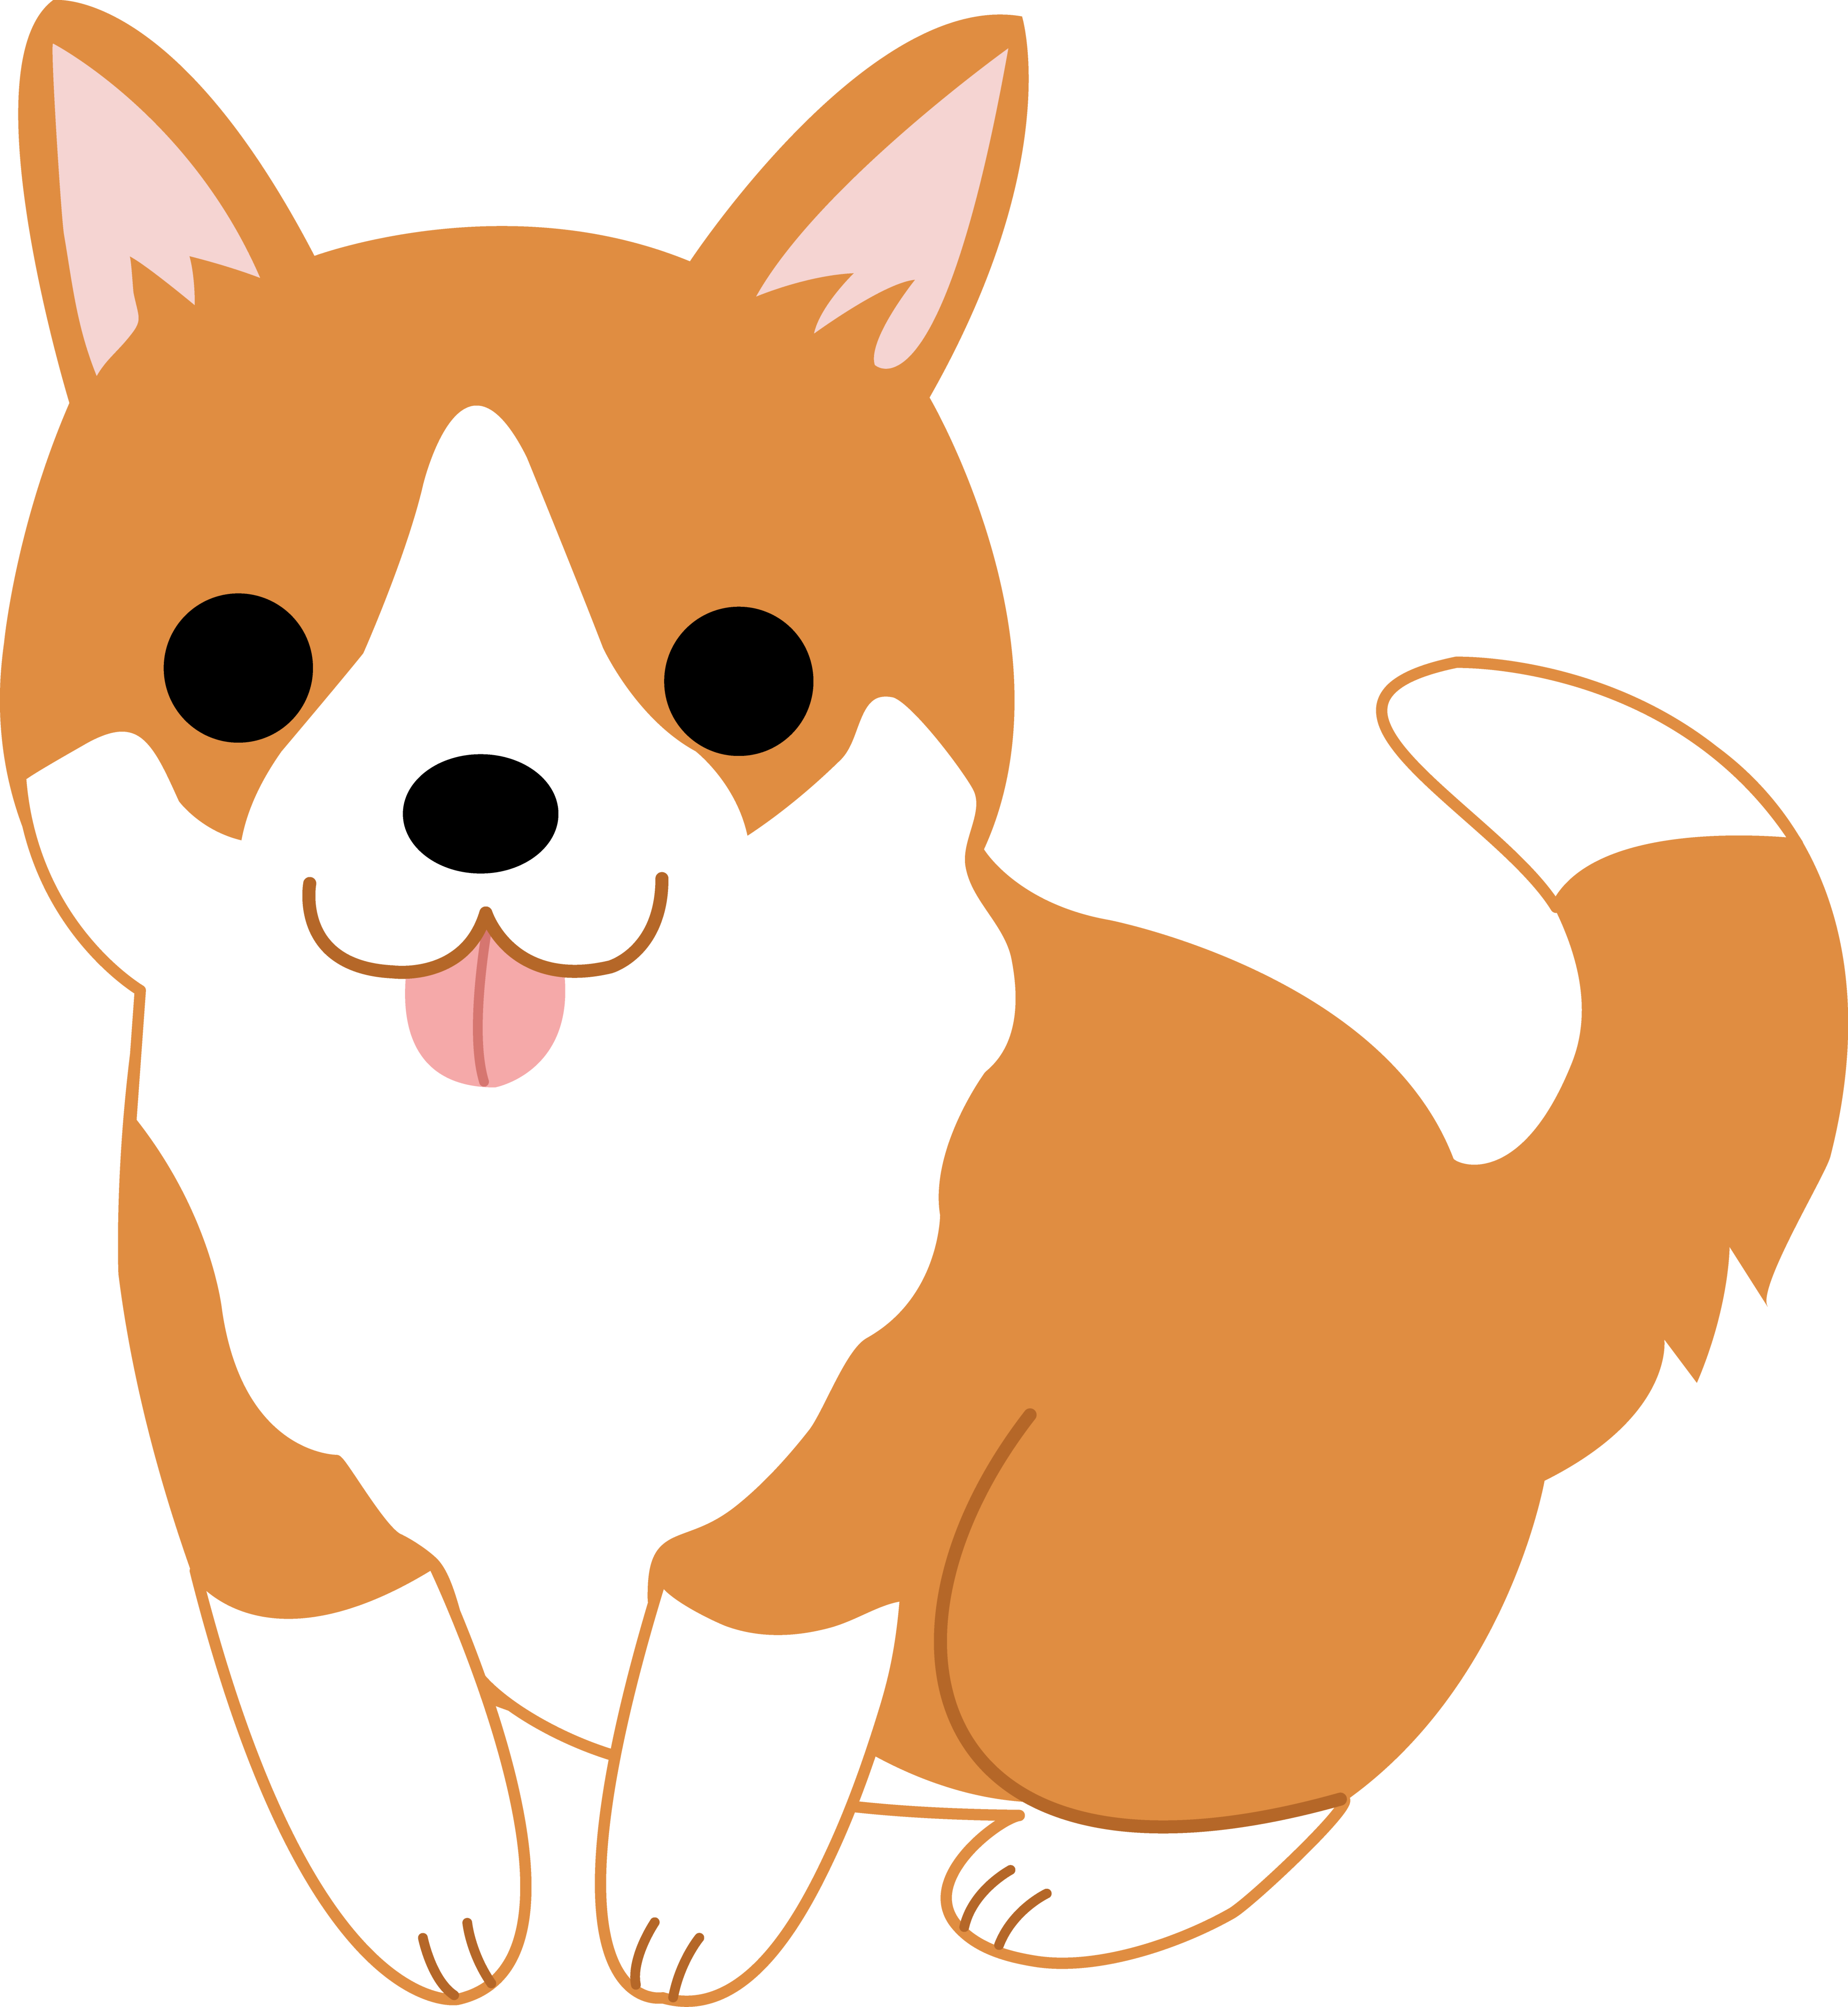 Animate drawing cute chibi dog. Animated png hd transparent